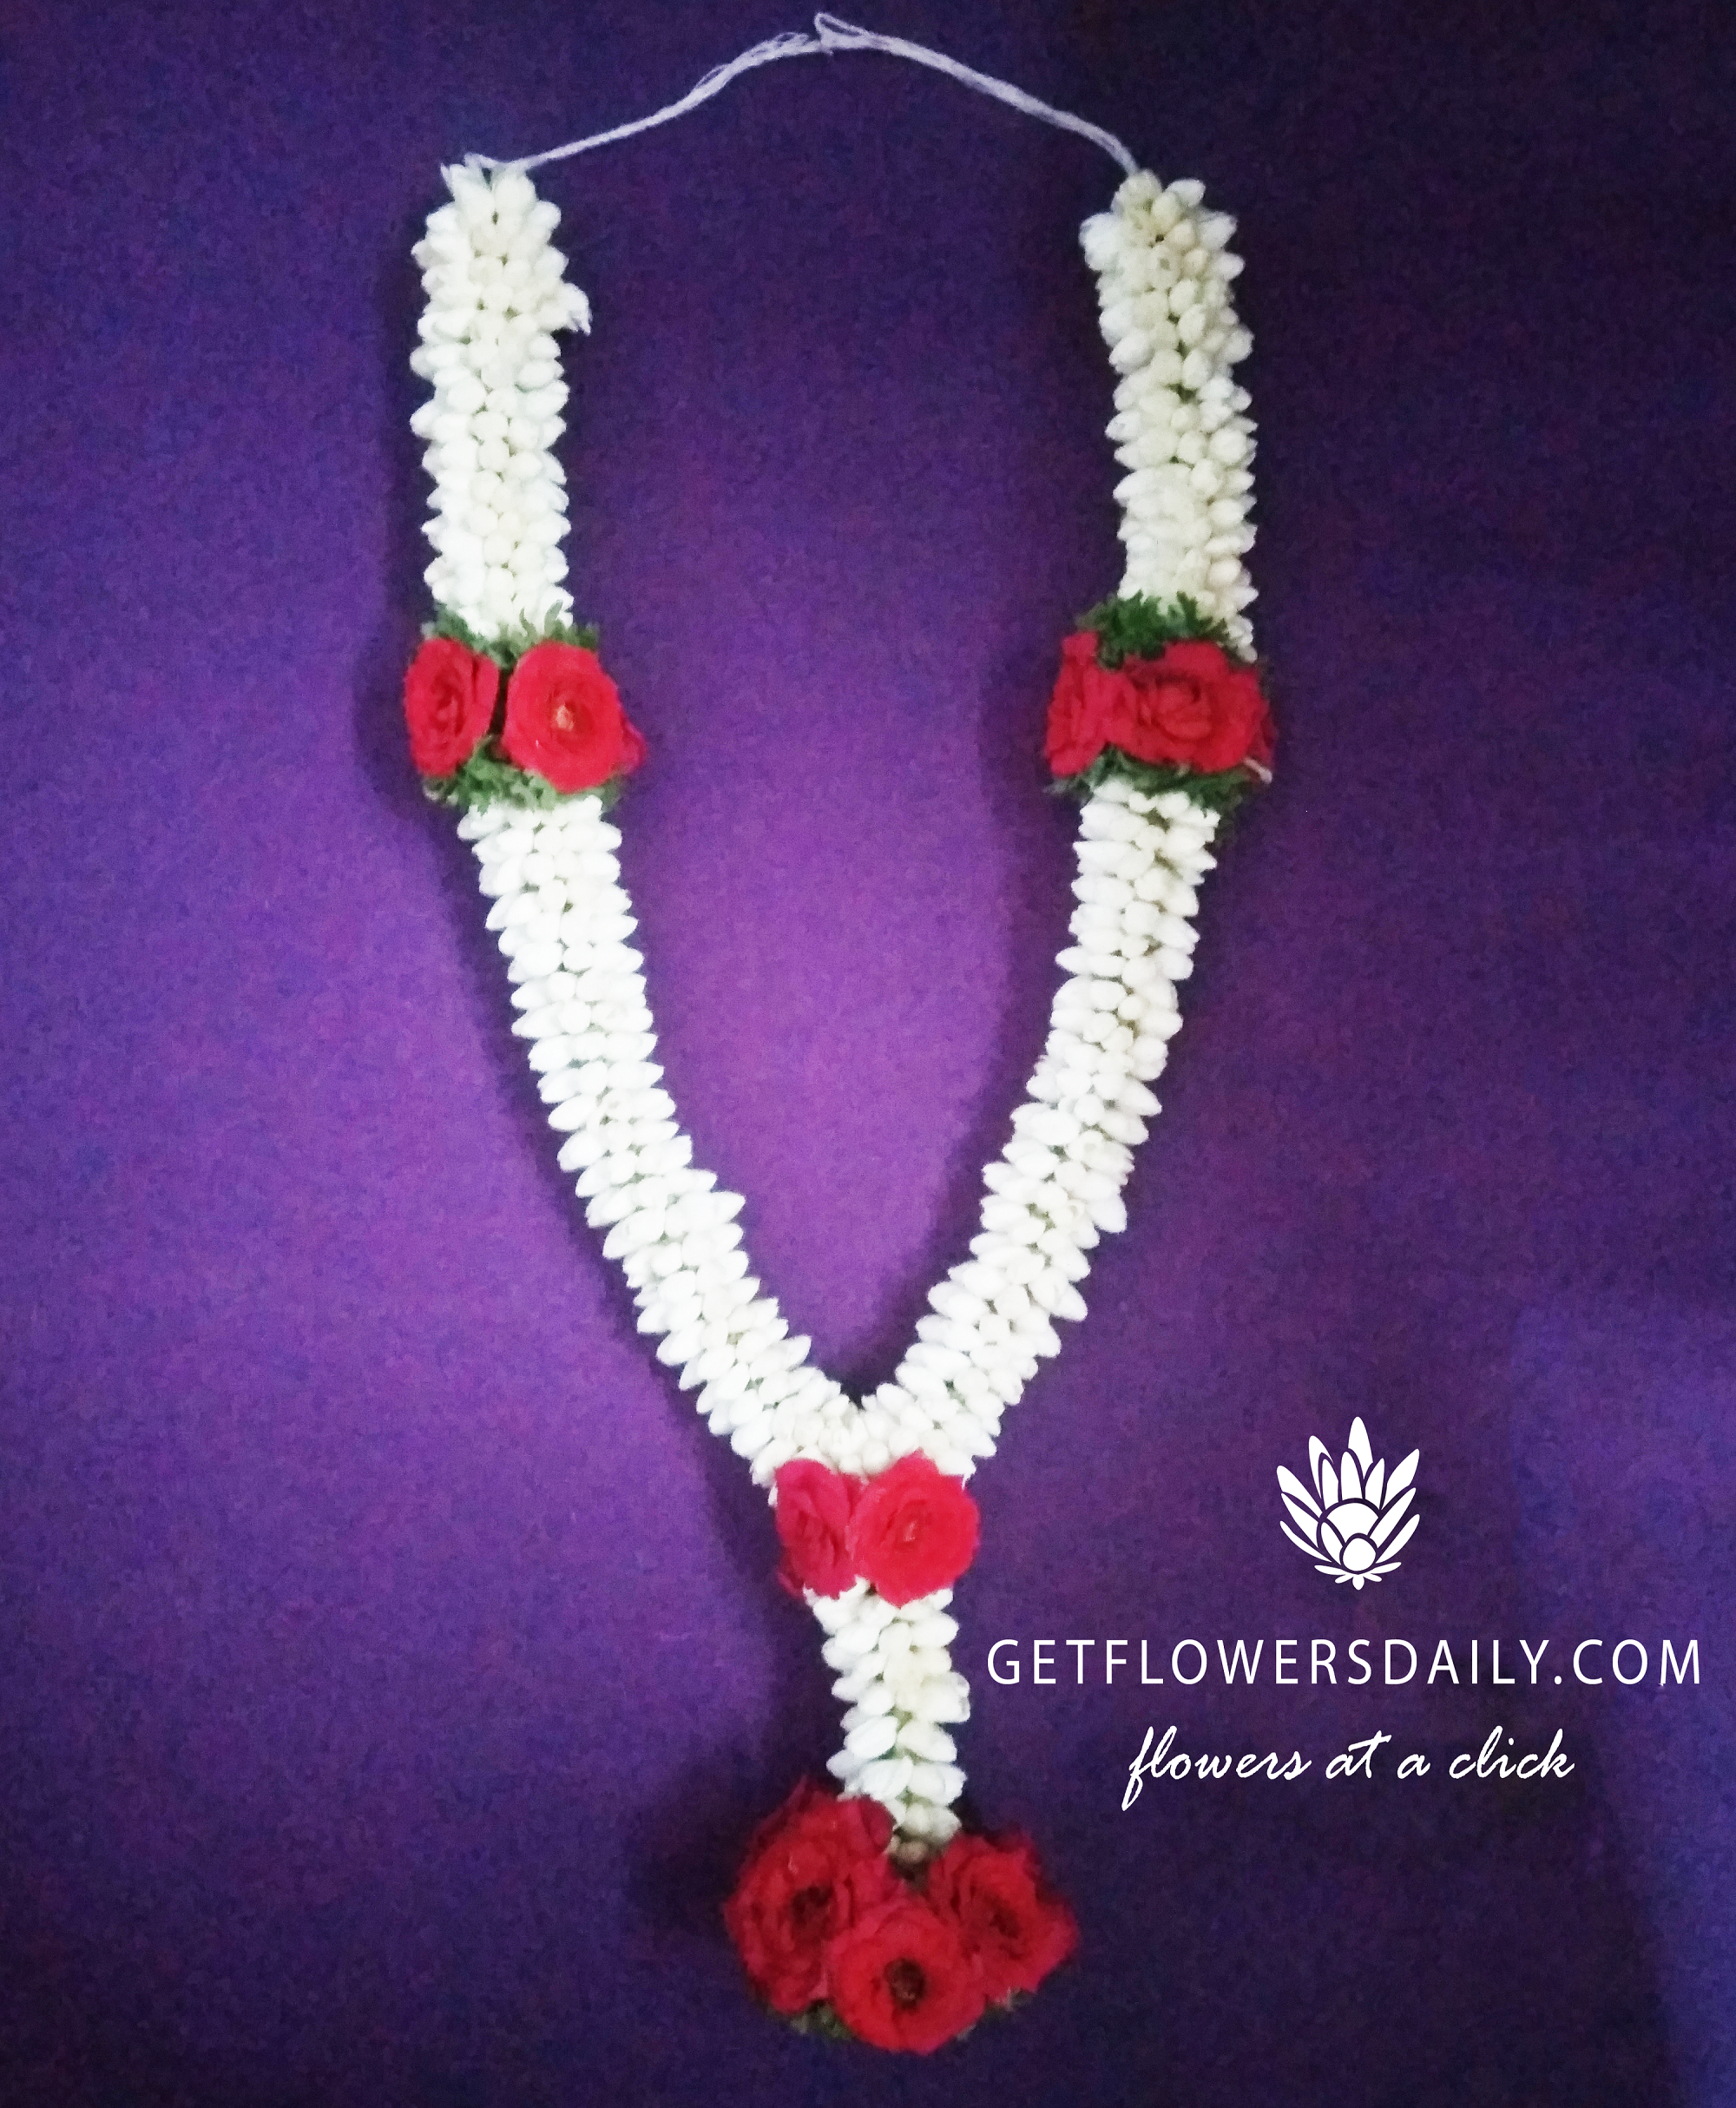 Jasmine Garlands With Apple Rose Flowers Embedded In Them Are Widely Used As Kalyana Malai In South Indian Wedd Online Flower Delivery Apple Roses Rose Flower